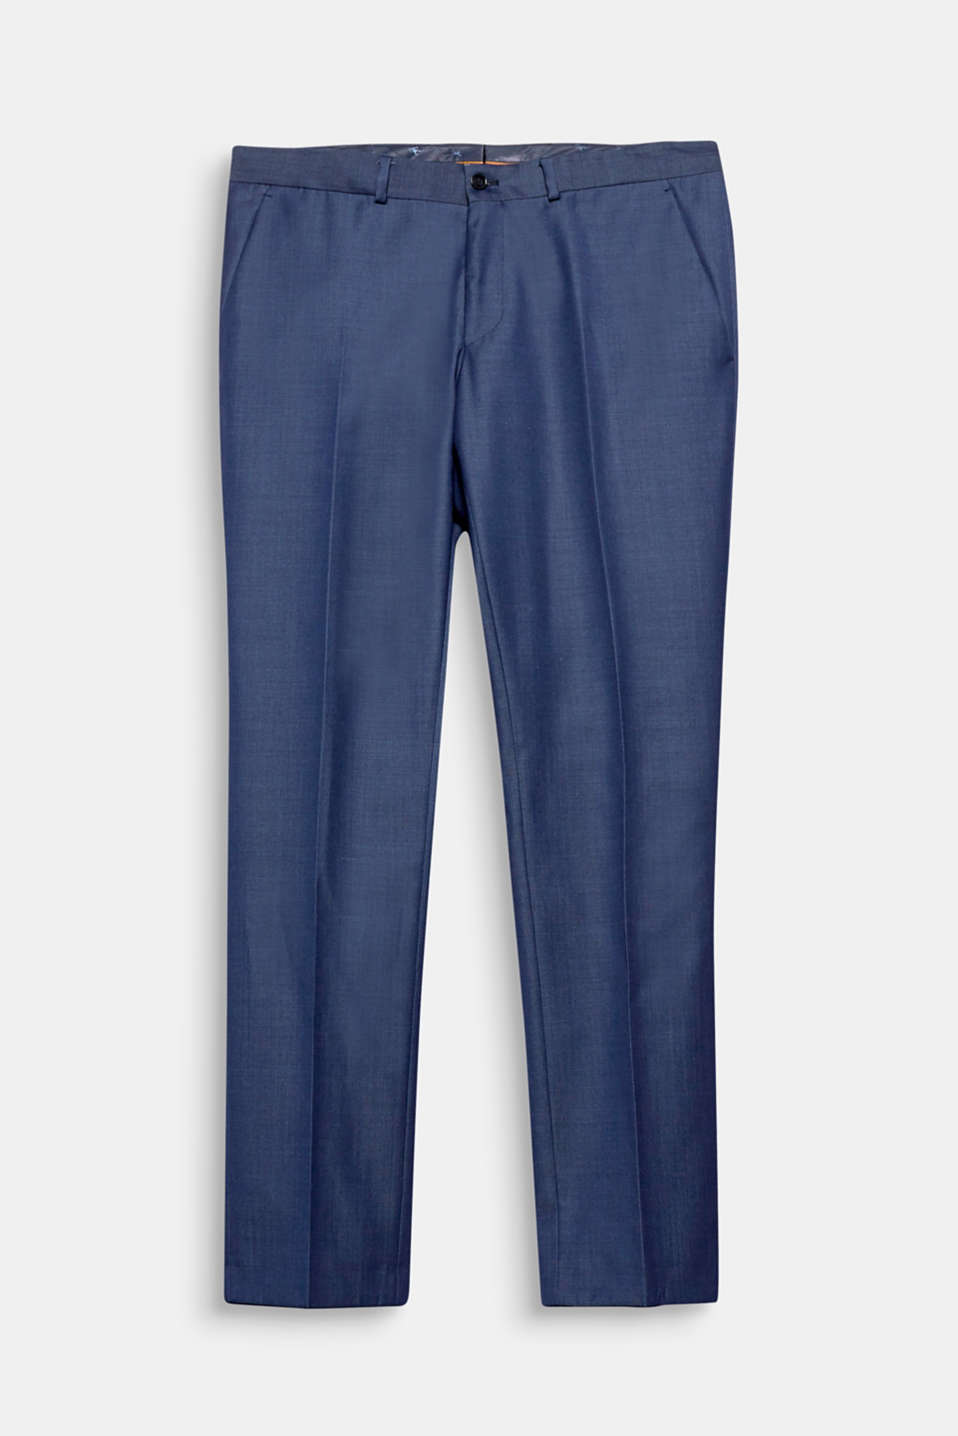 With pinstripes: suit trousers made of a high-quality, new wool blend